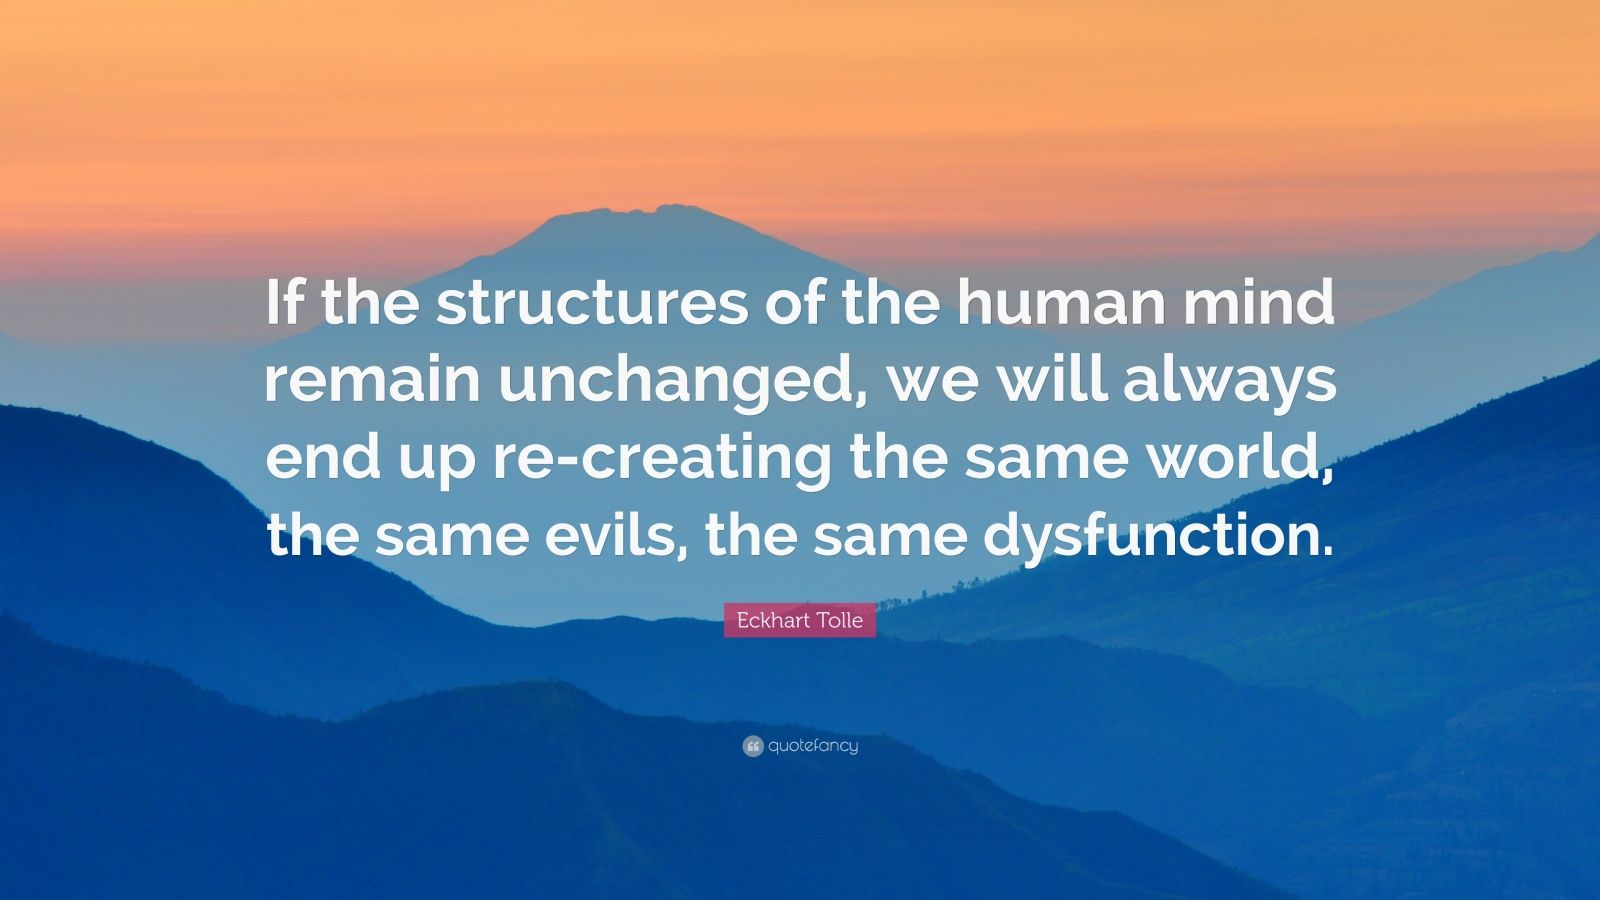 """Eckhart Tolle Quote: """"If the structures of the human mind remain unchanged, we will always end up re-creating the same world, the same evils, the same dysfunction."""""""